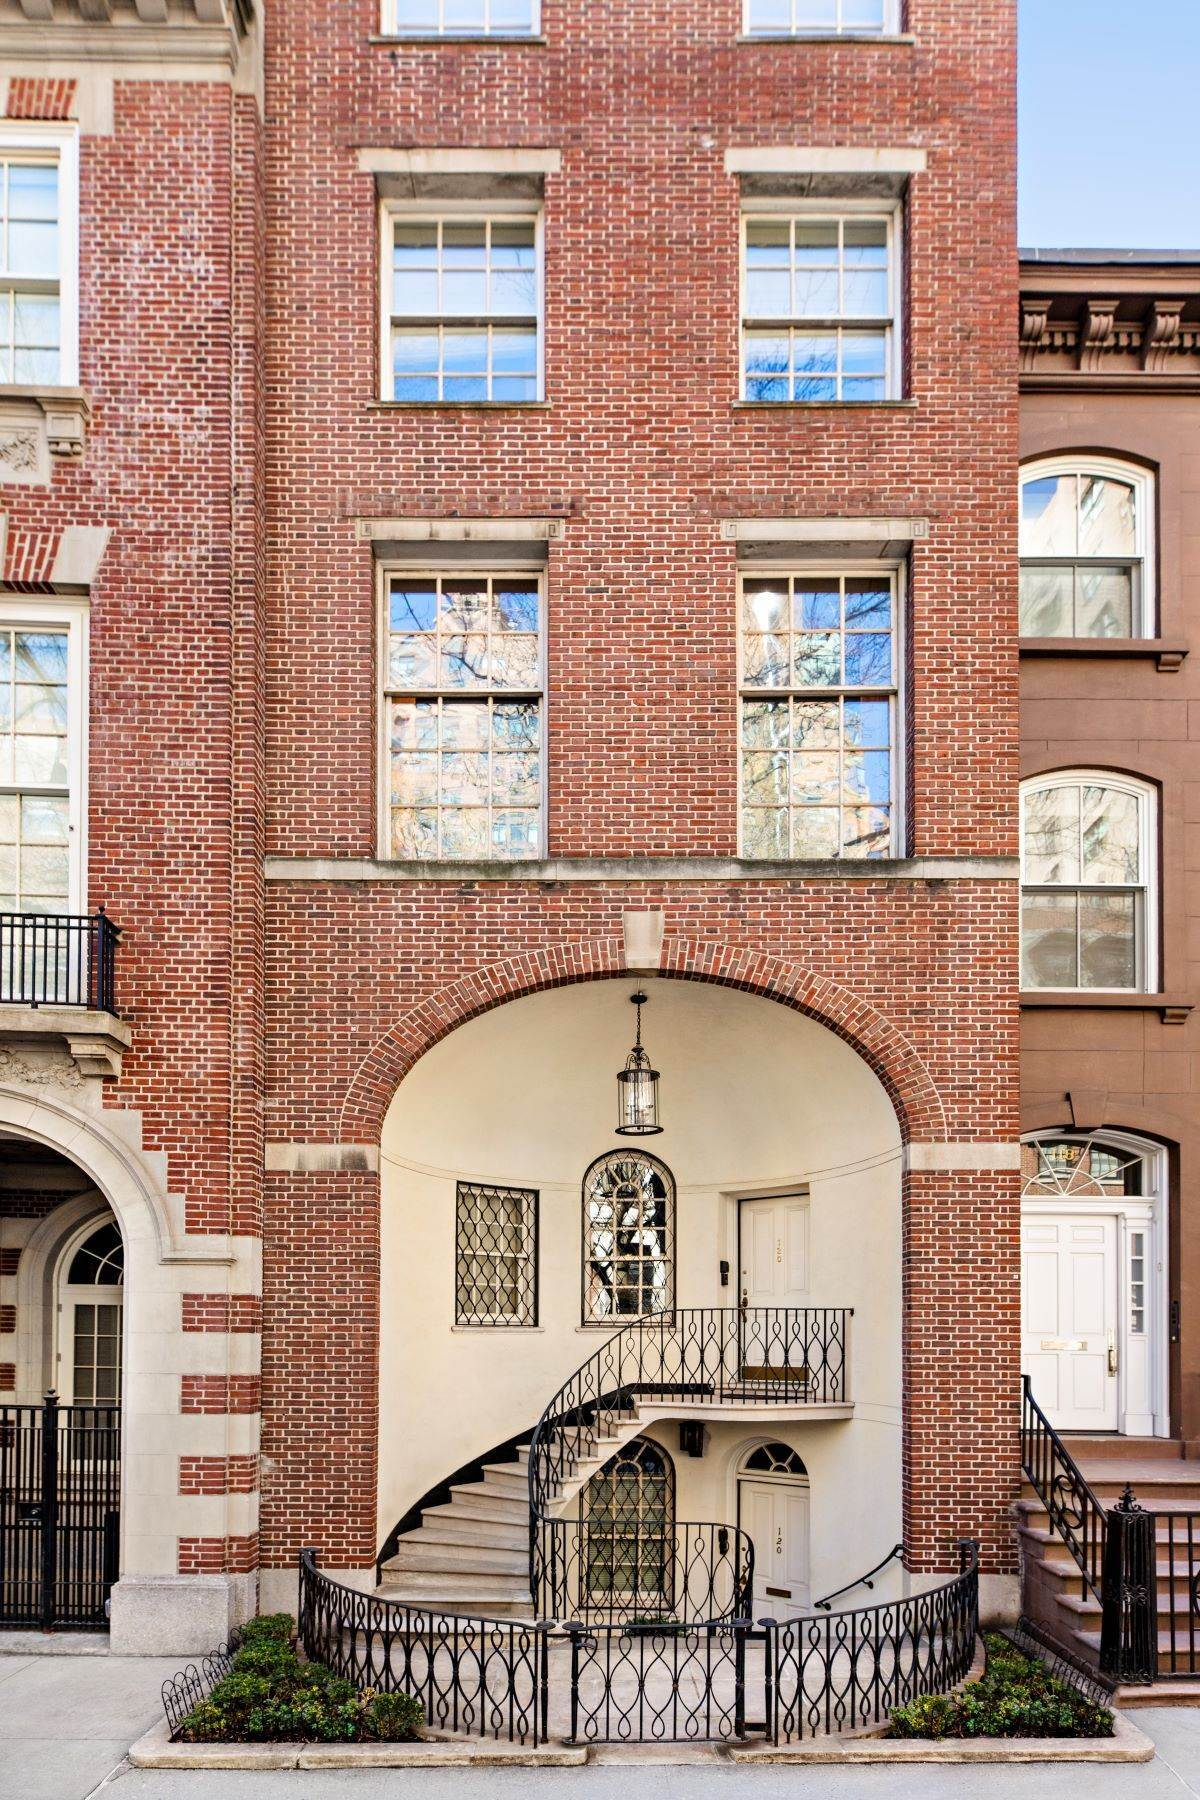 townhouses for Sale at 120 East 78th Street, TH 120 East 78th Street New York, New York 10075 United States